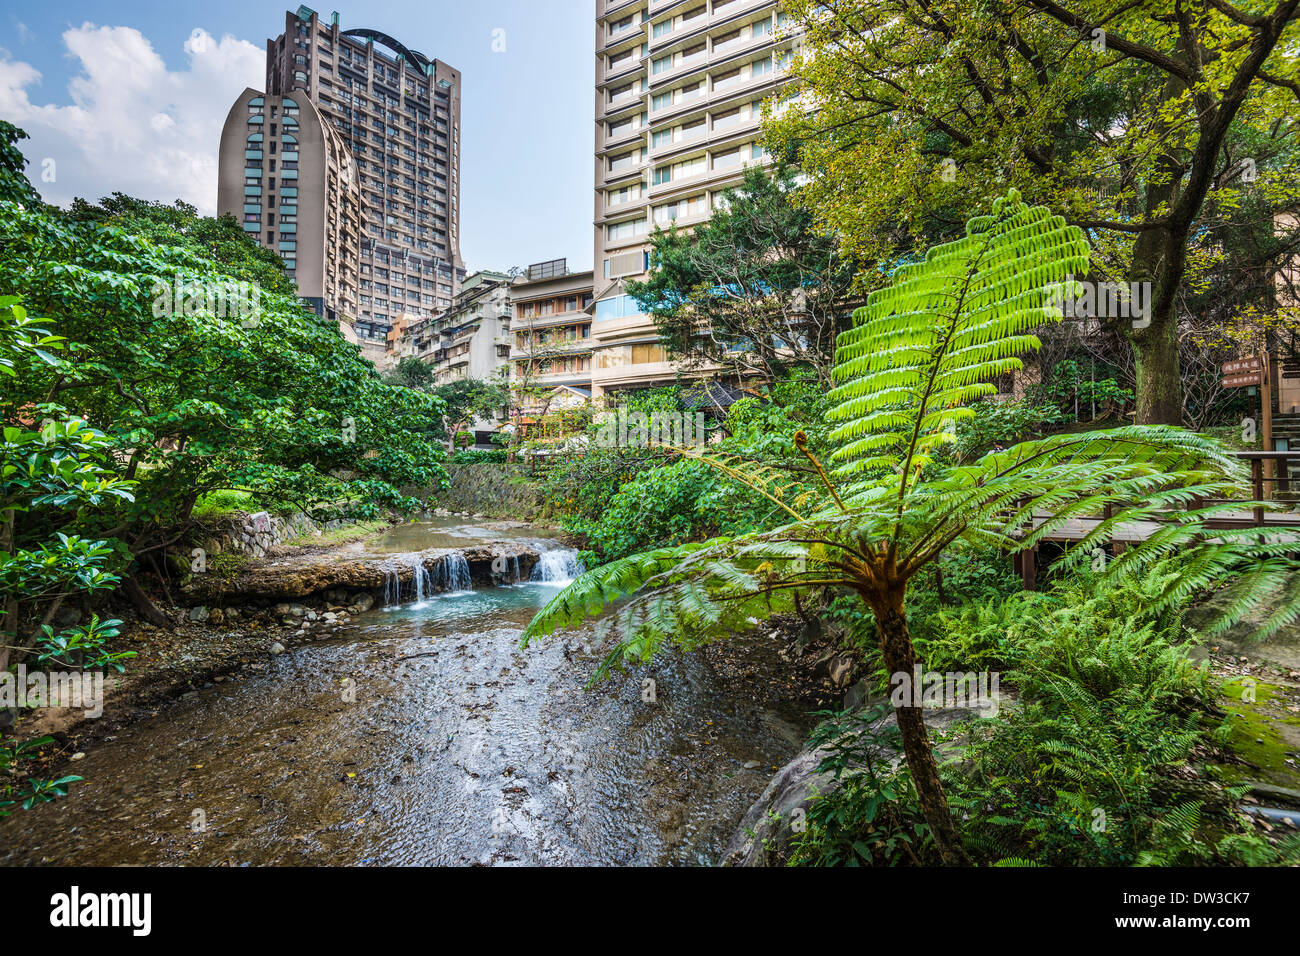 Taipei, Taiwan at Beitou hot springs district. - Stock Image